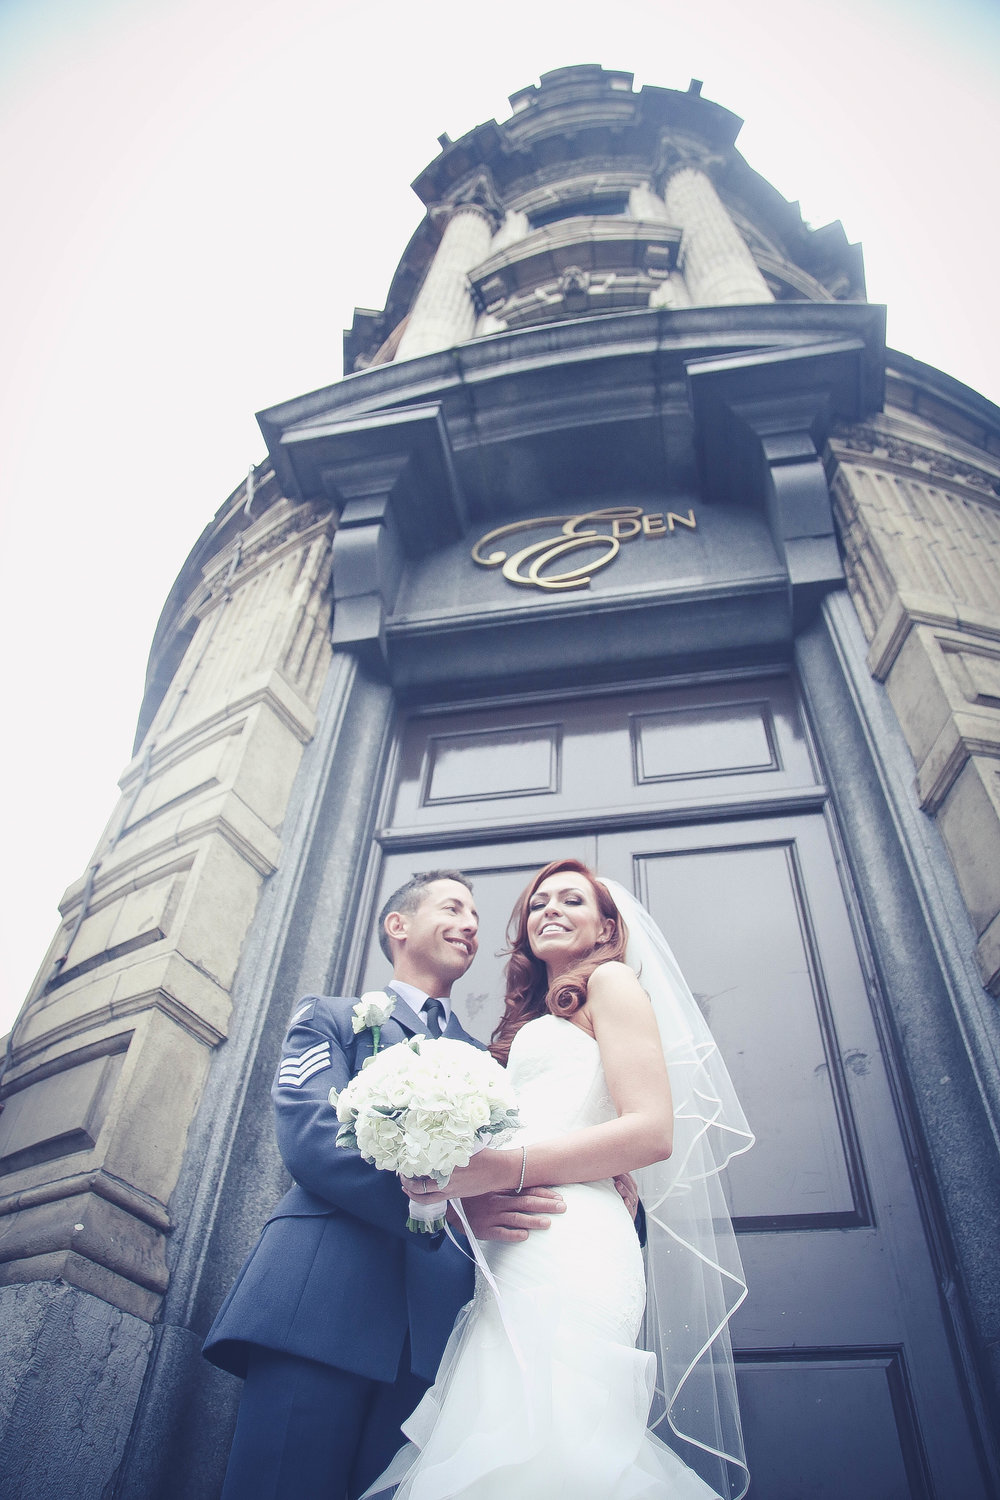 Weddings at the shankly hotel liverpool-87.jpg